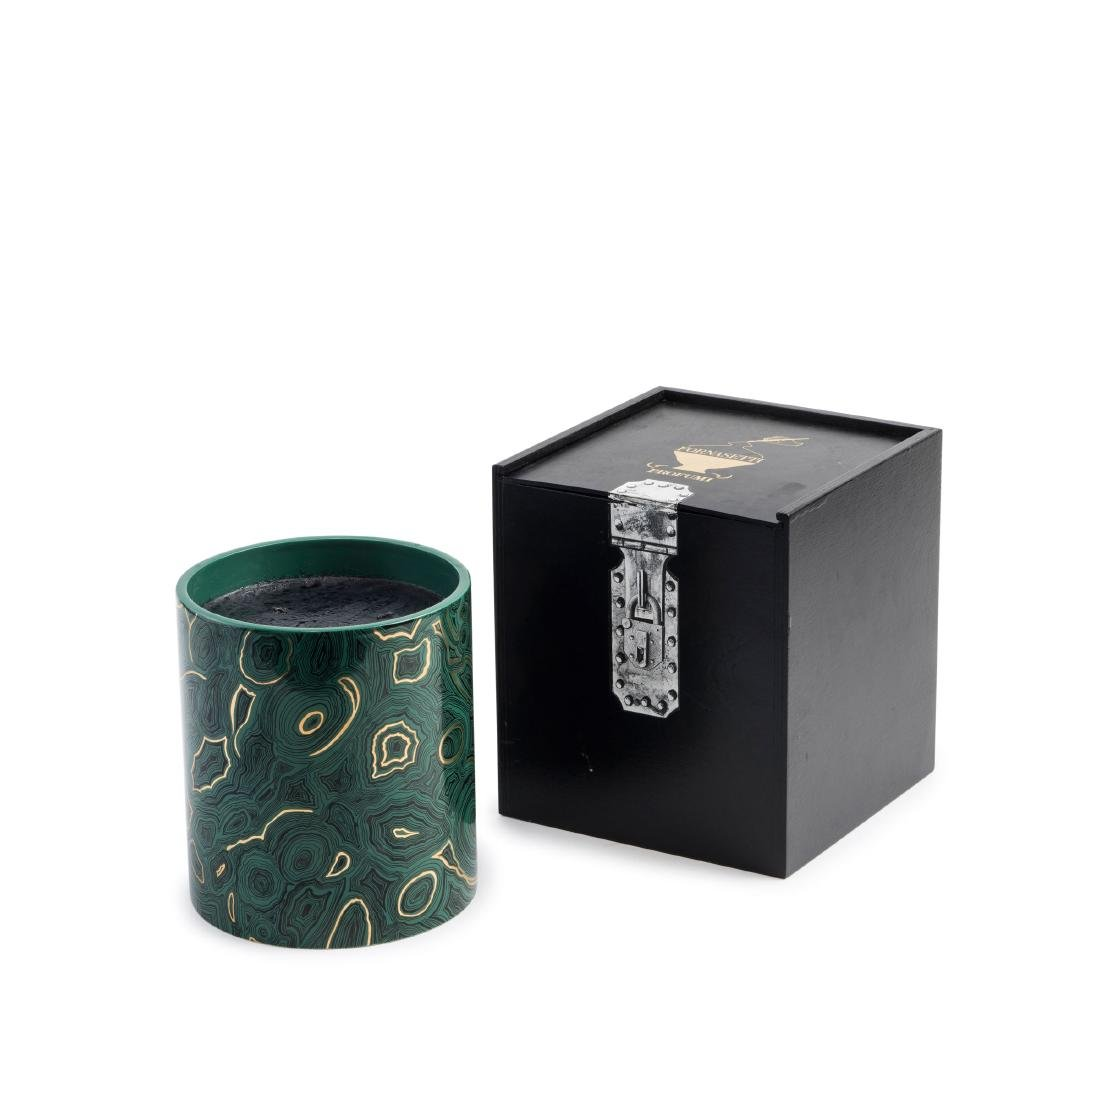 'Malachite' scented candle, 2010s